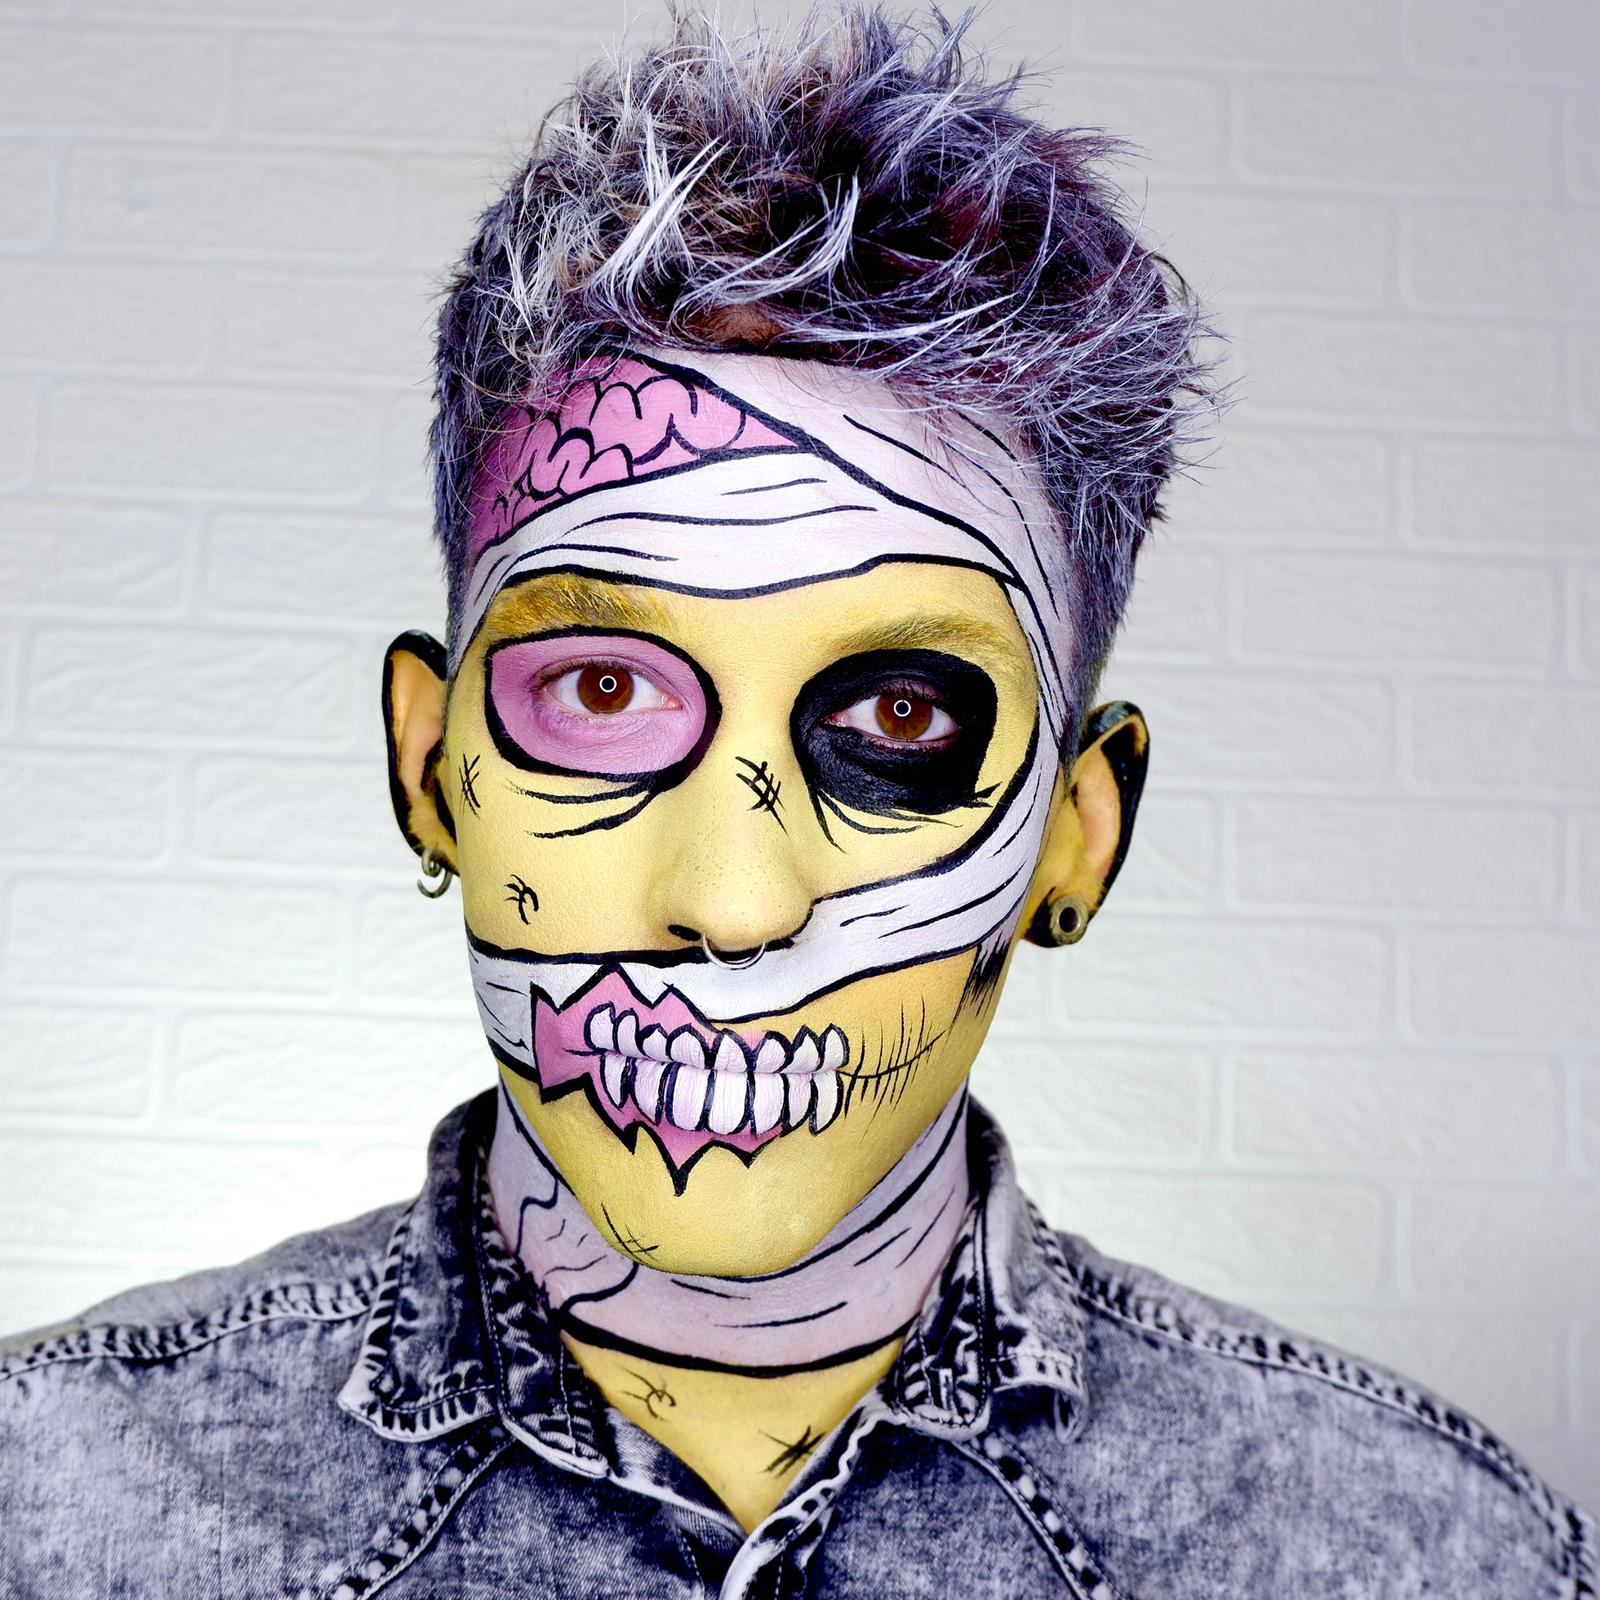 Boy with Pop Art Zombie face paint design for Halloween